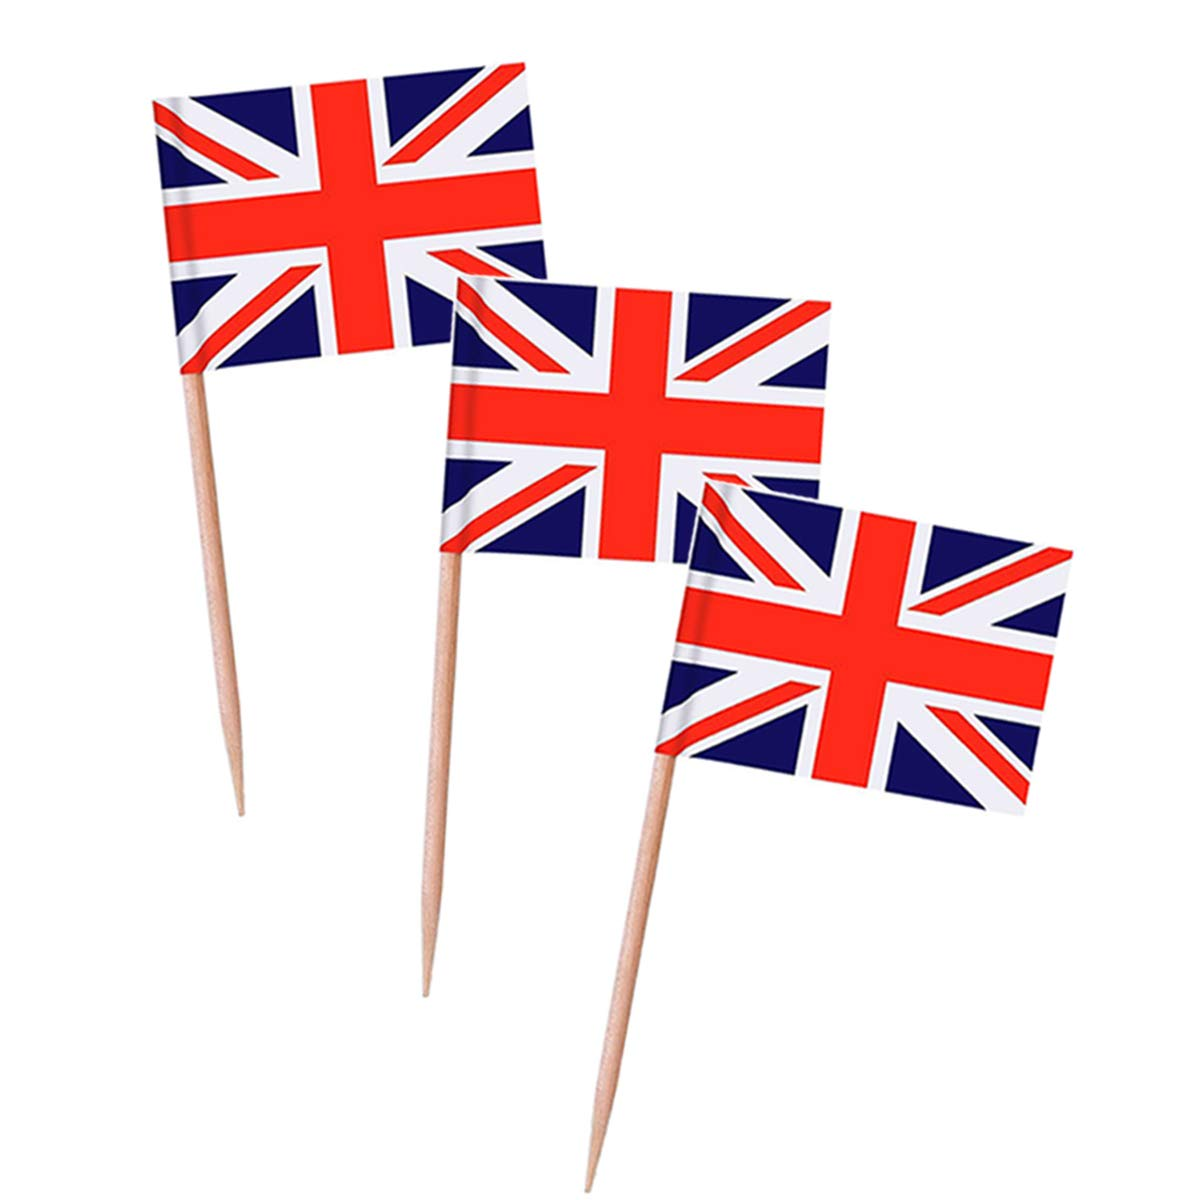 Topoox 100 Pack British Flag Party Cupcake Picks Toothpick Flag Dinner Flags Cake Toppers Decorations